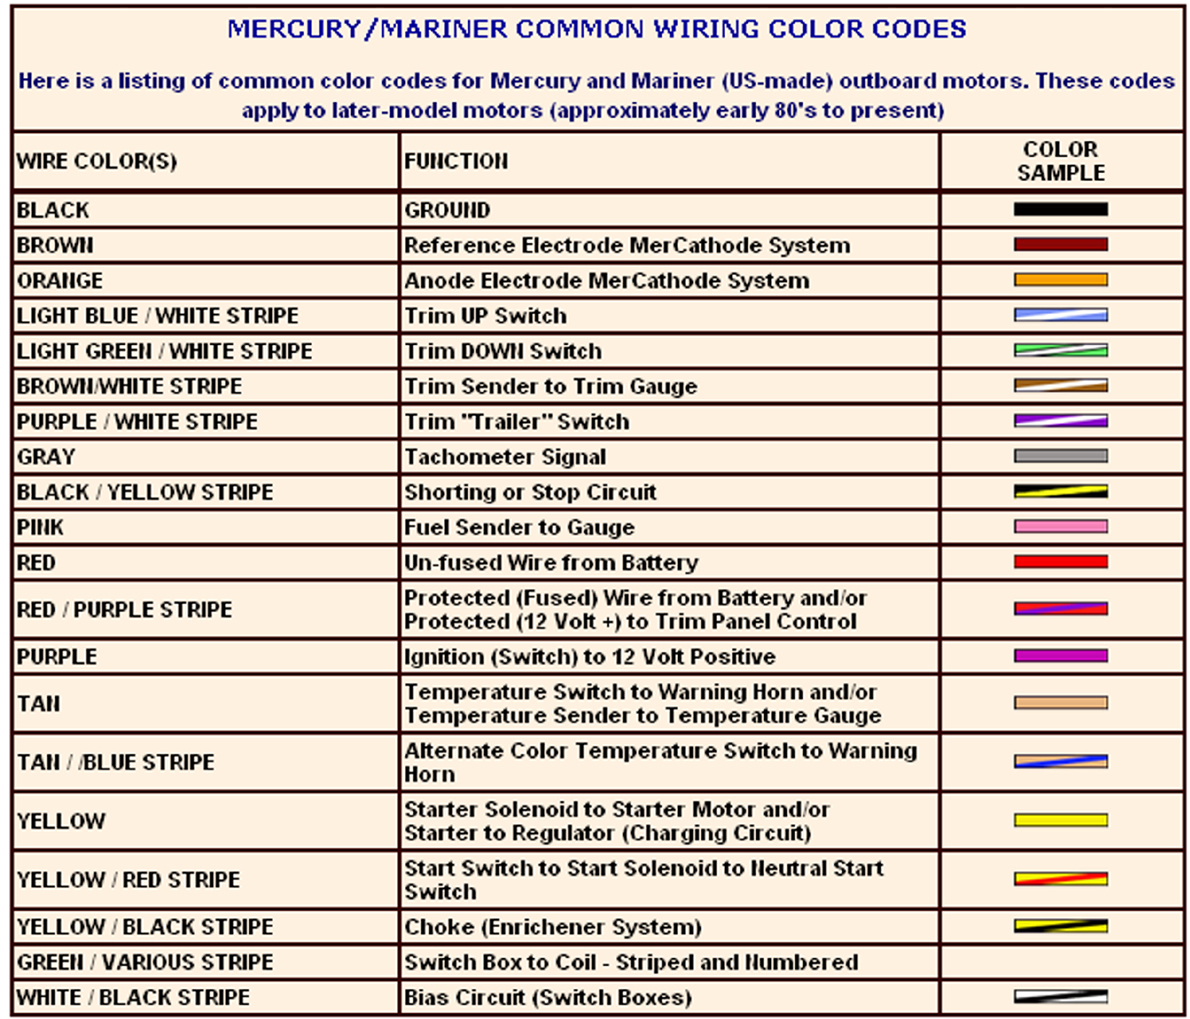 4 pole motor wiring diagram color coding 2005 optimax 150 wiring | bloodydecks wiring diagram color coding #1